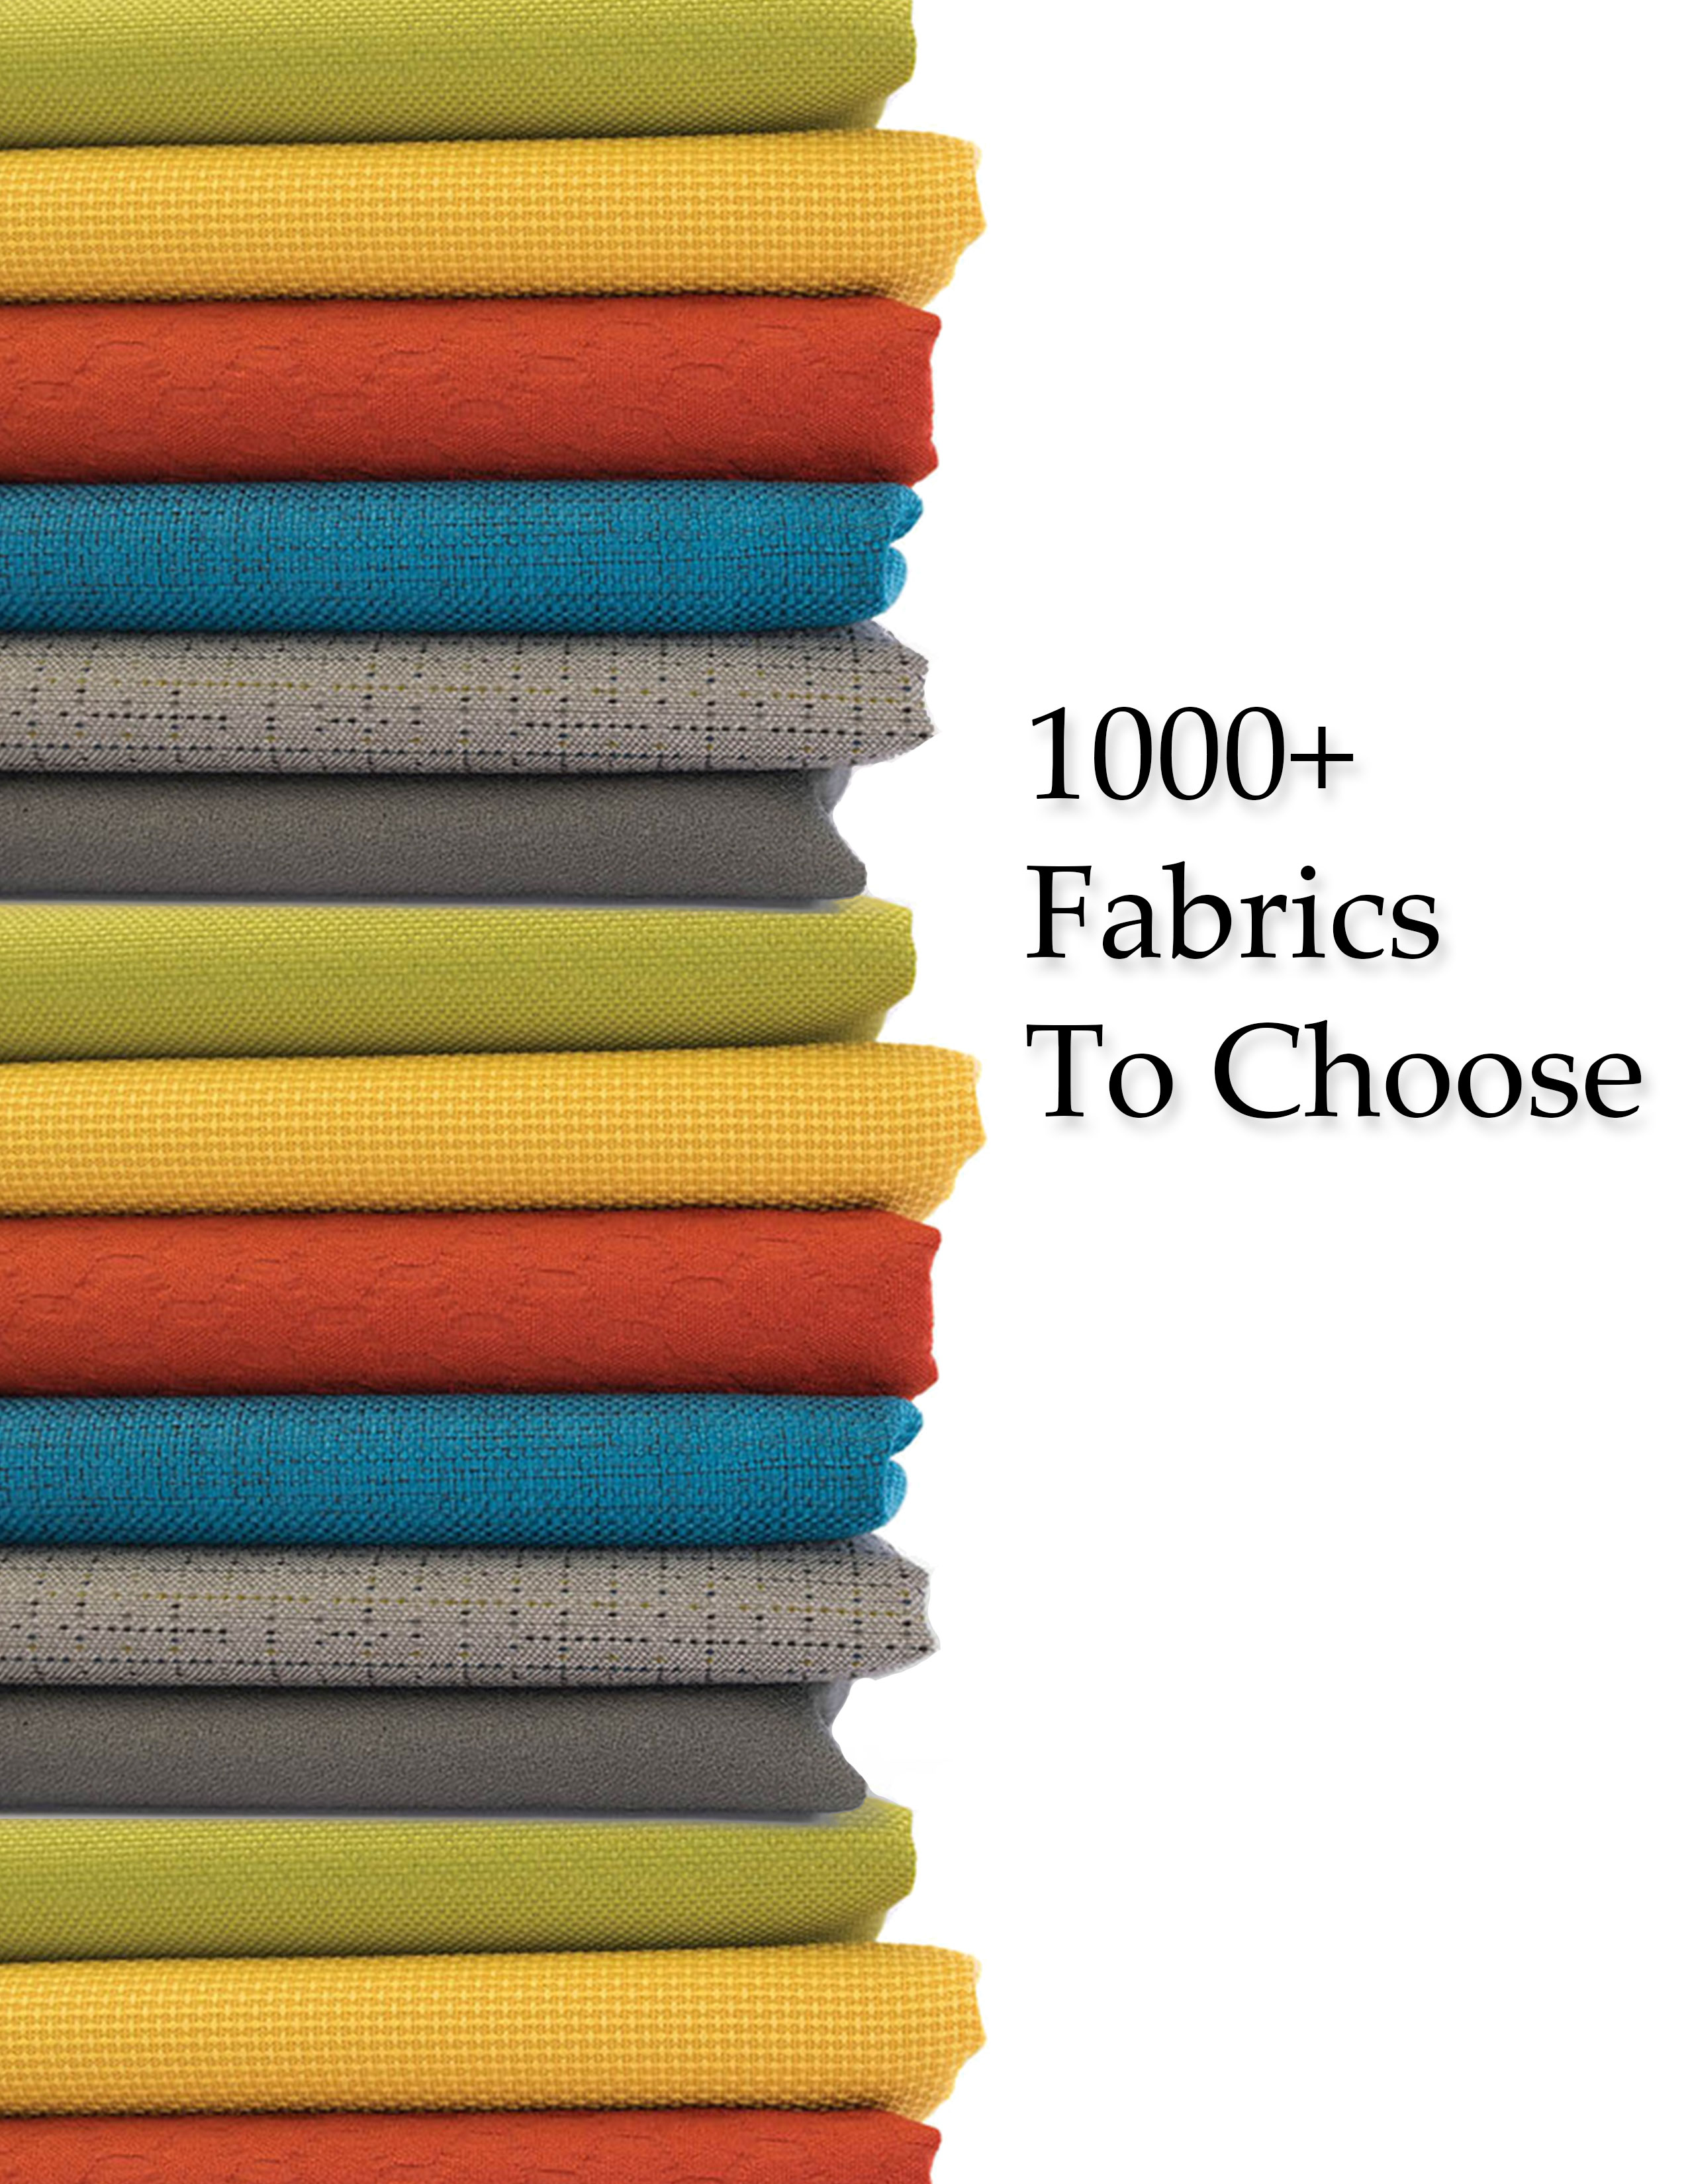 New-Fabric-Title